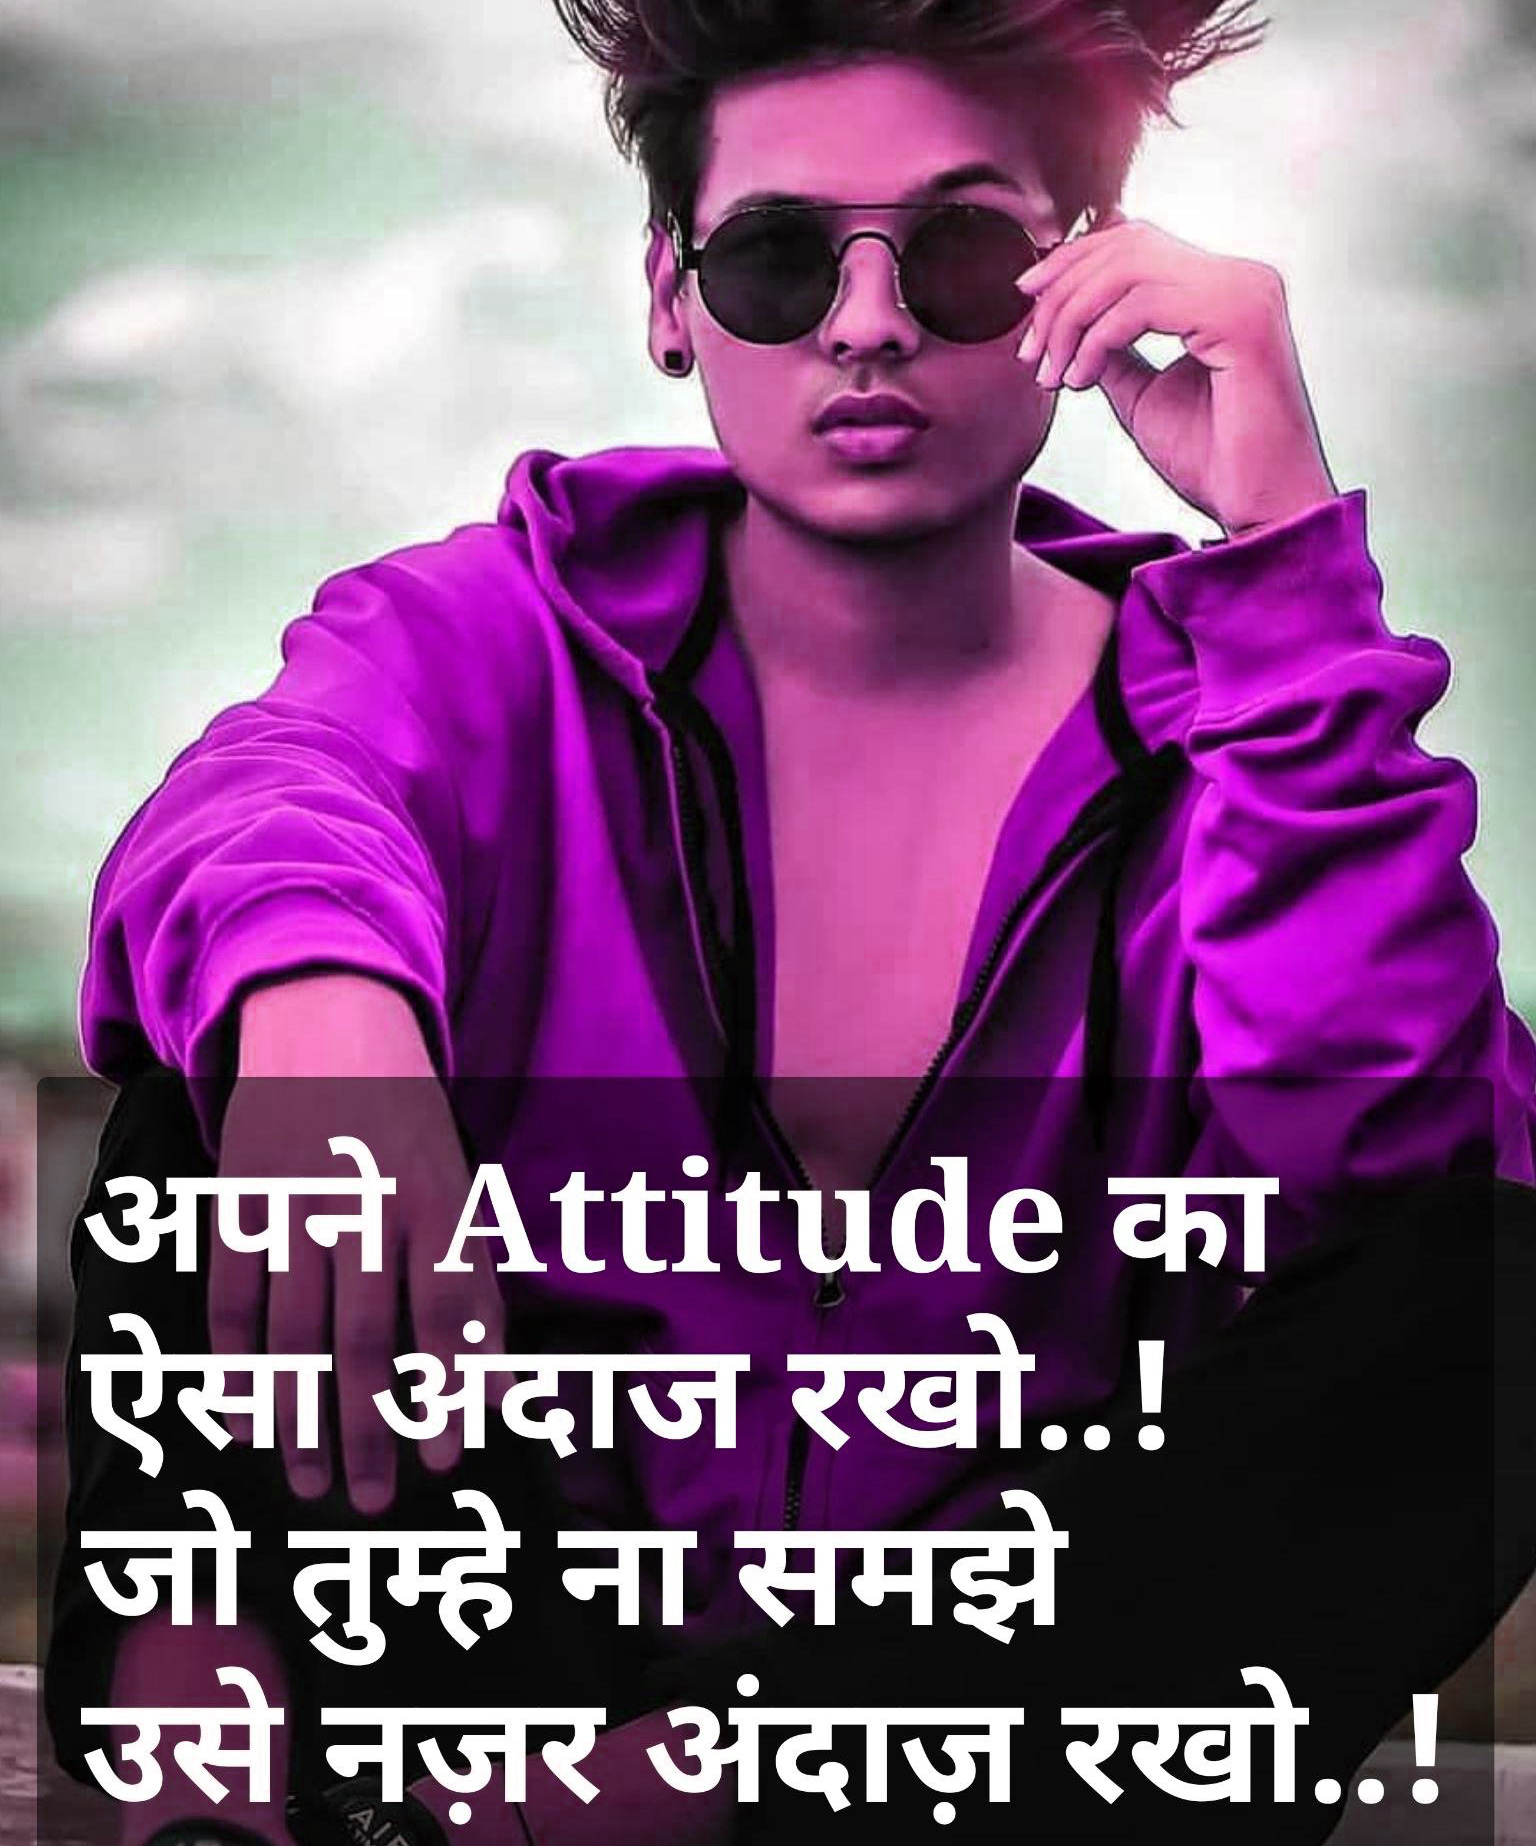 Hindi Attitude Whatsapp DP Profile Images Download 21